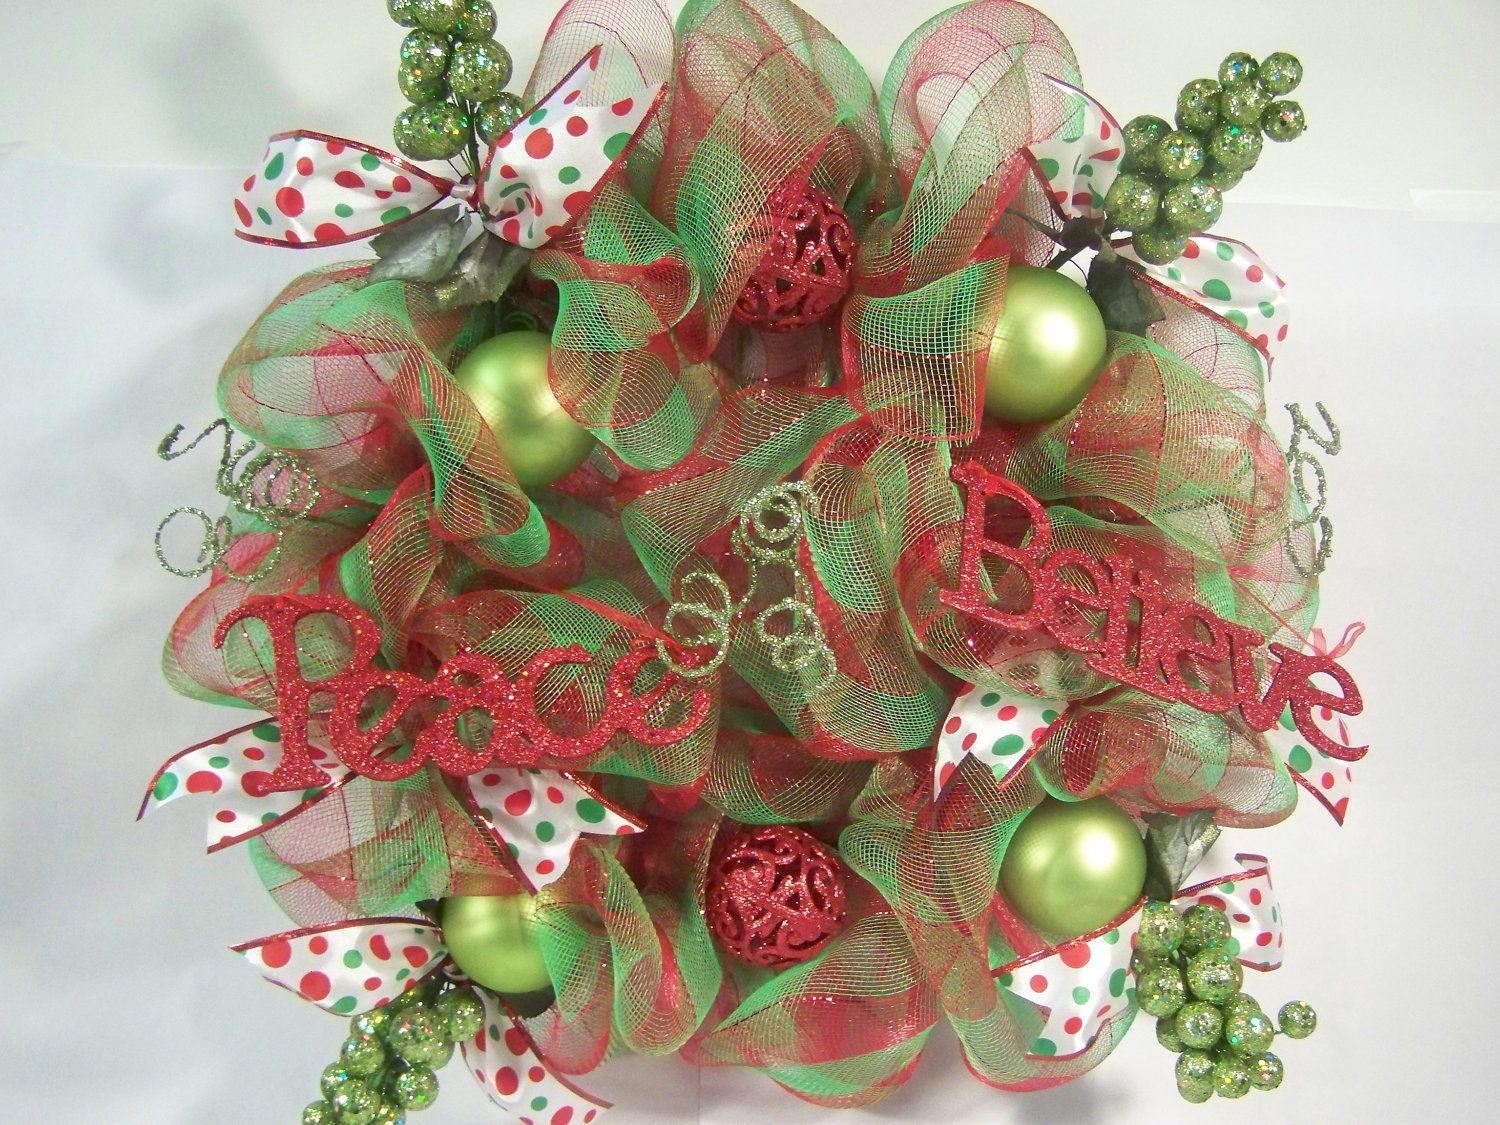 christmas wreath geo mesh poly mesh red lime green 7500 via etsy - Decorating A Christmas Wreath With Mesh Ribbon